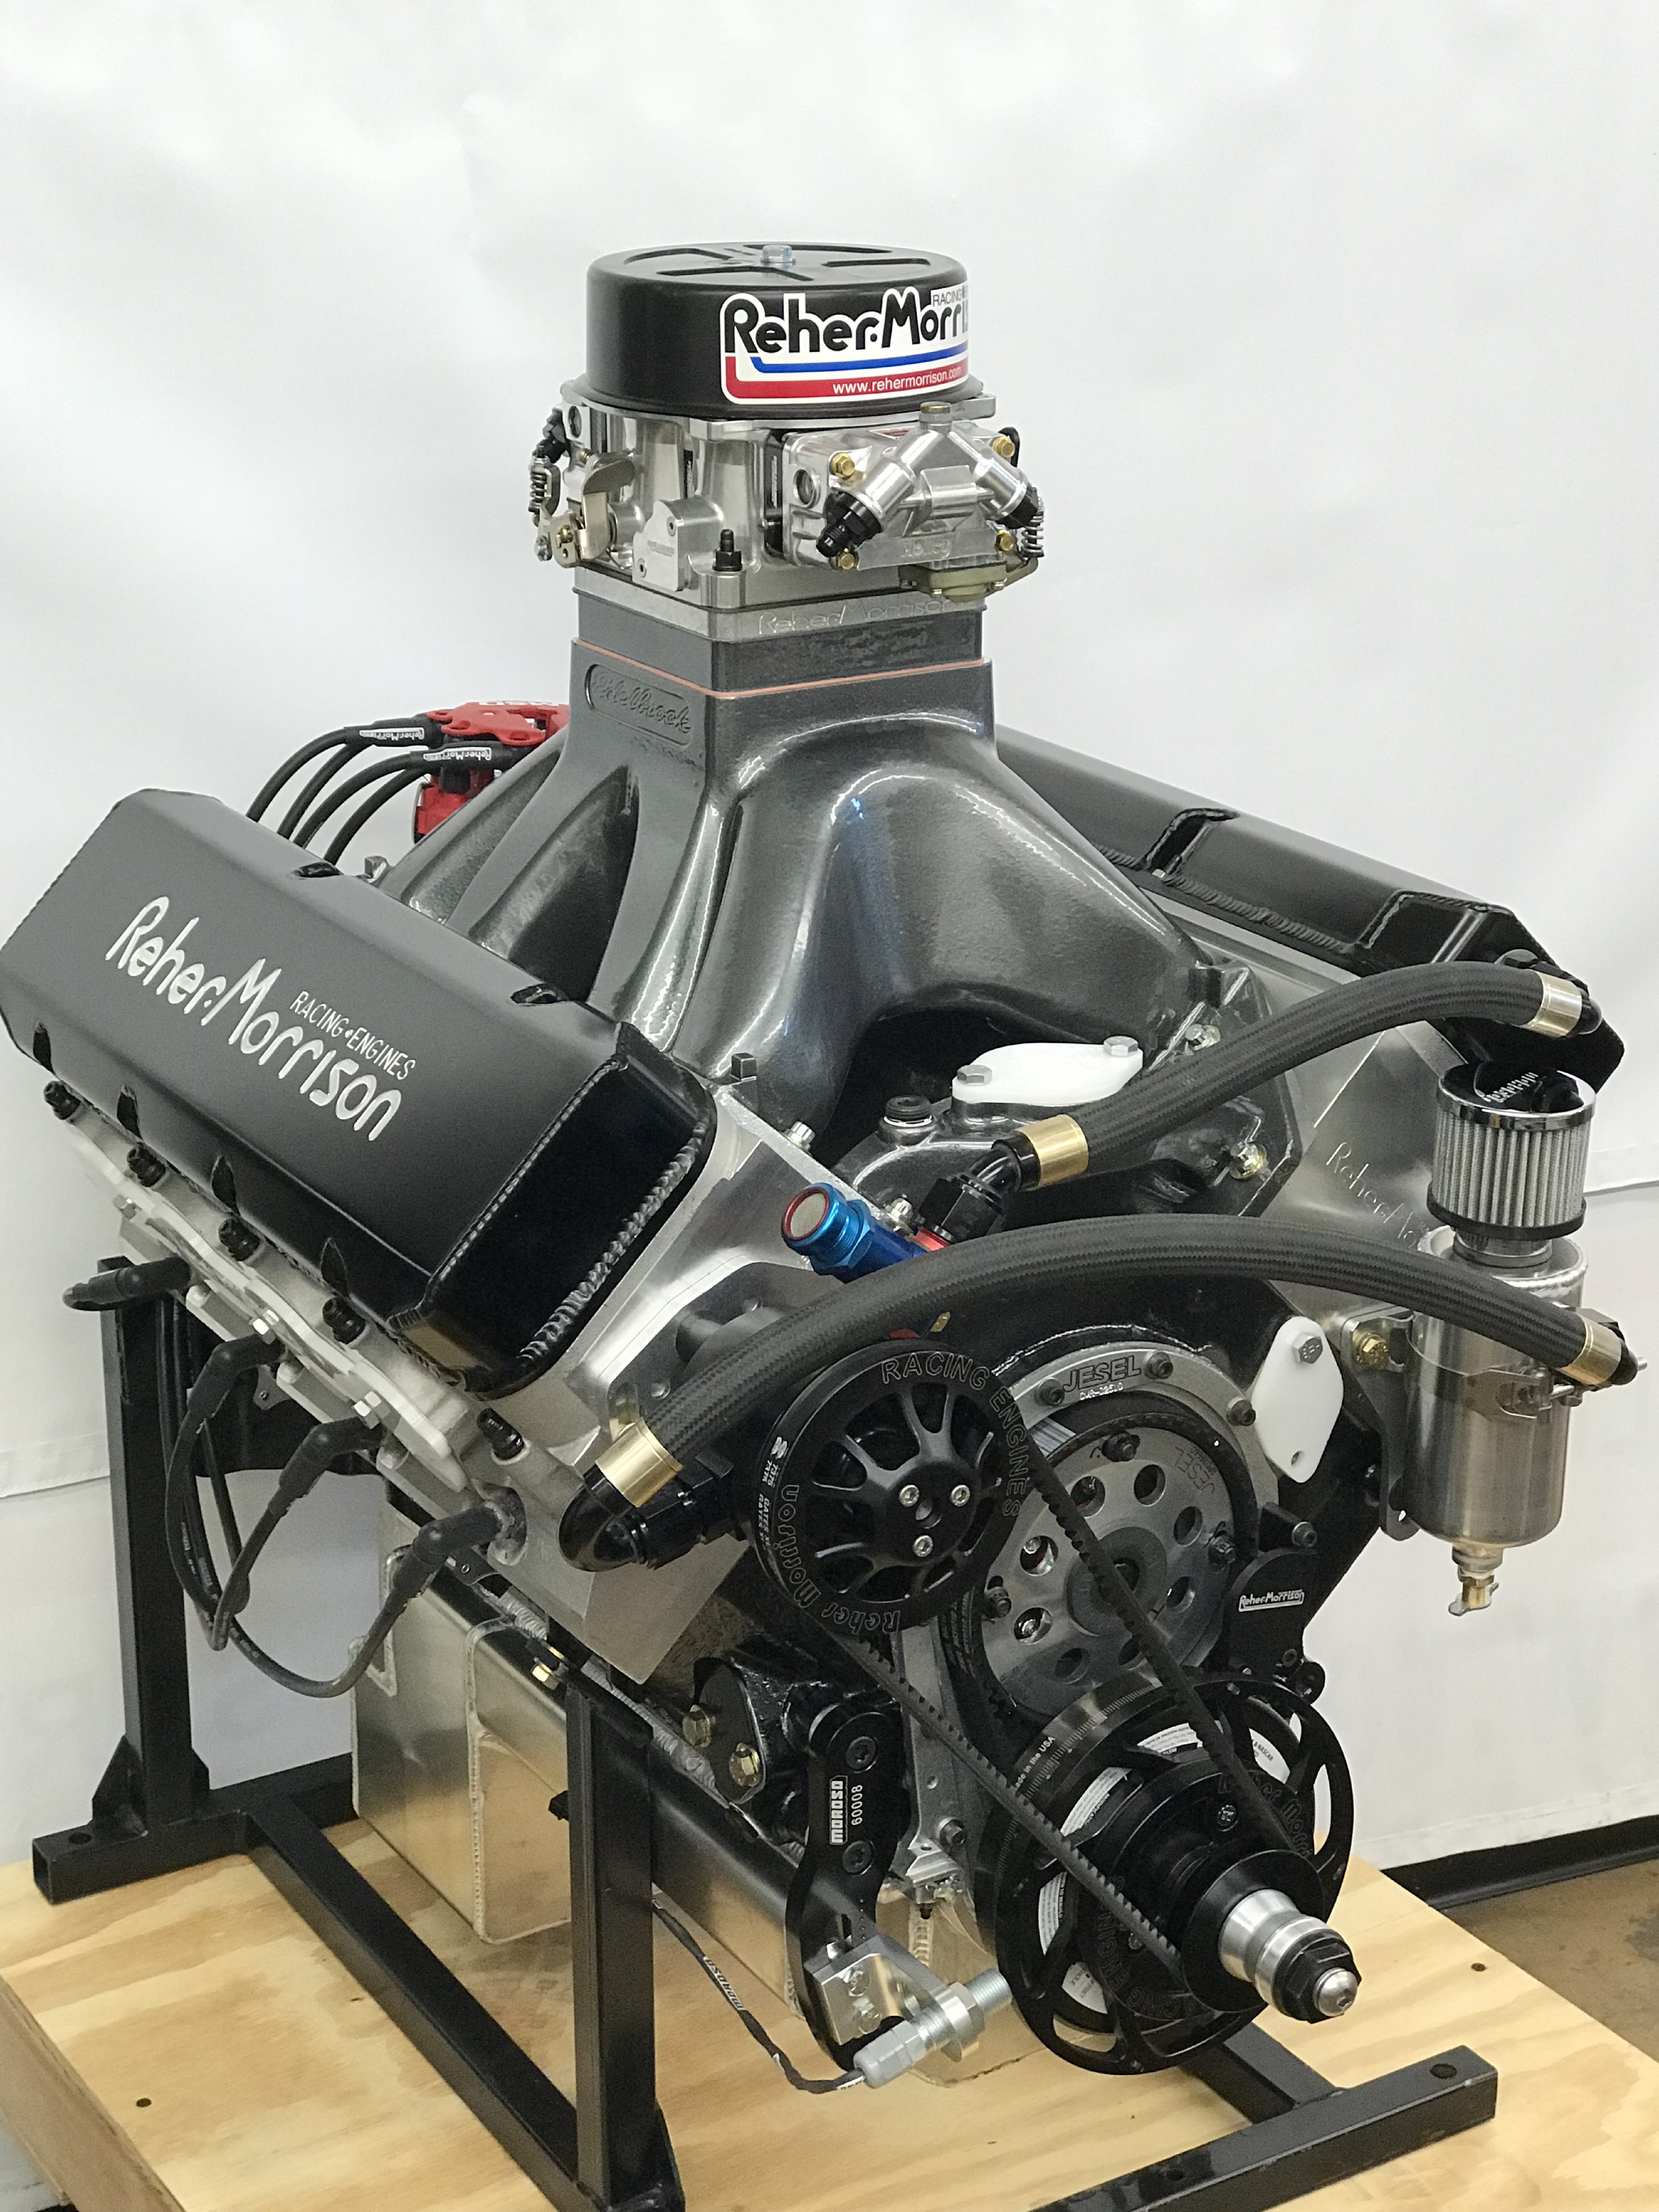 big block chevrolet | product categories | reher morrison racing engines